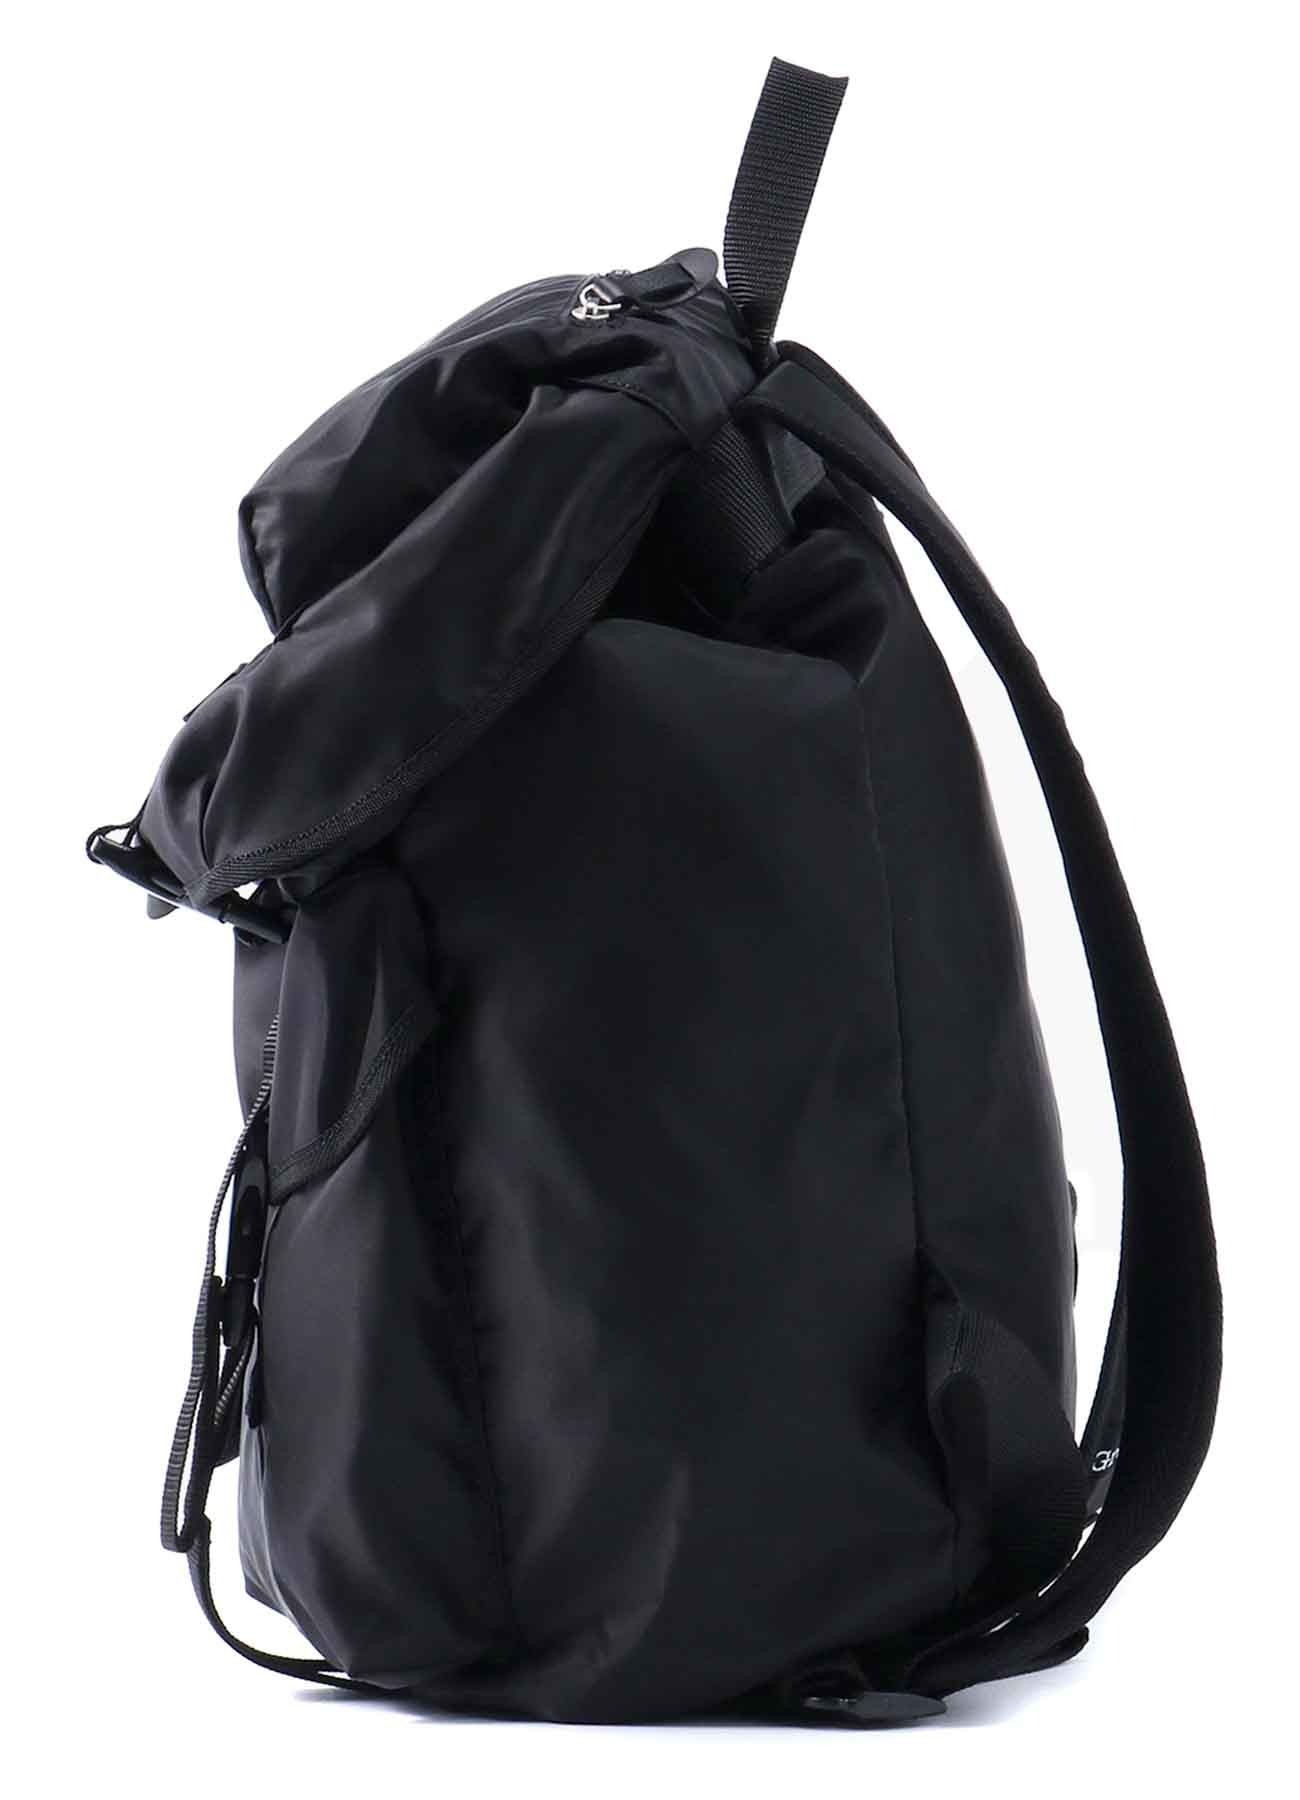 Soft Nylon and Owskin_ Backpack